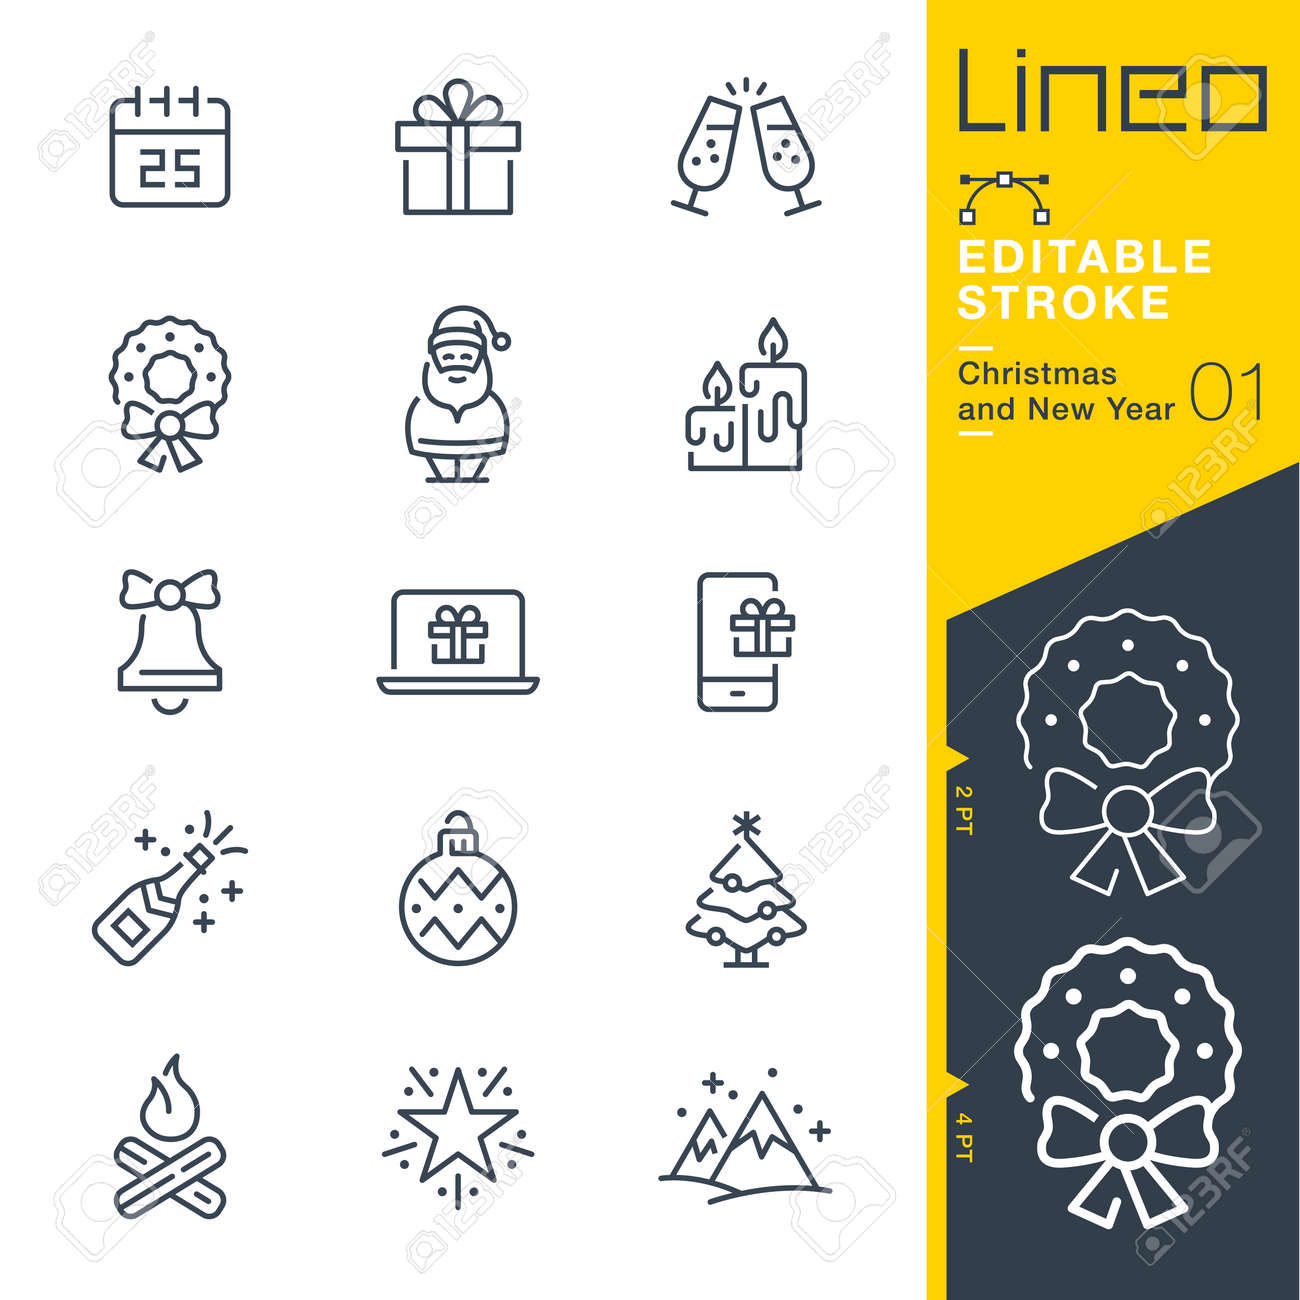 Lineo Editable Stroke - Christmas and New Year line icon Vector Icons - Adjust stroke weight - Change to any color - 87431923